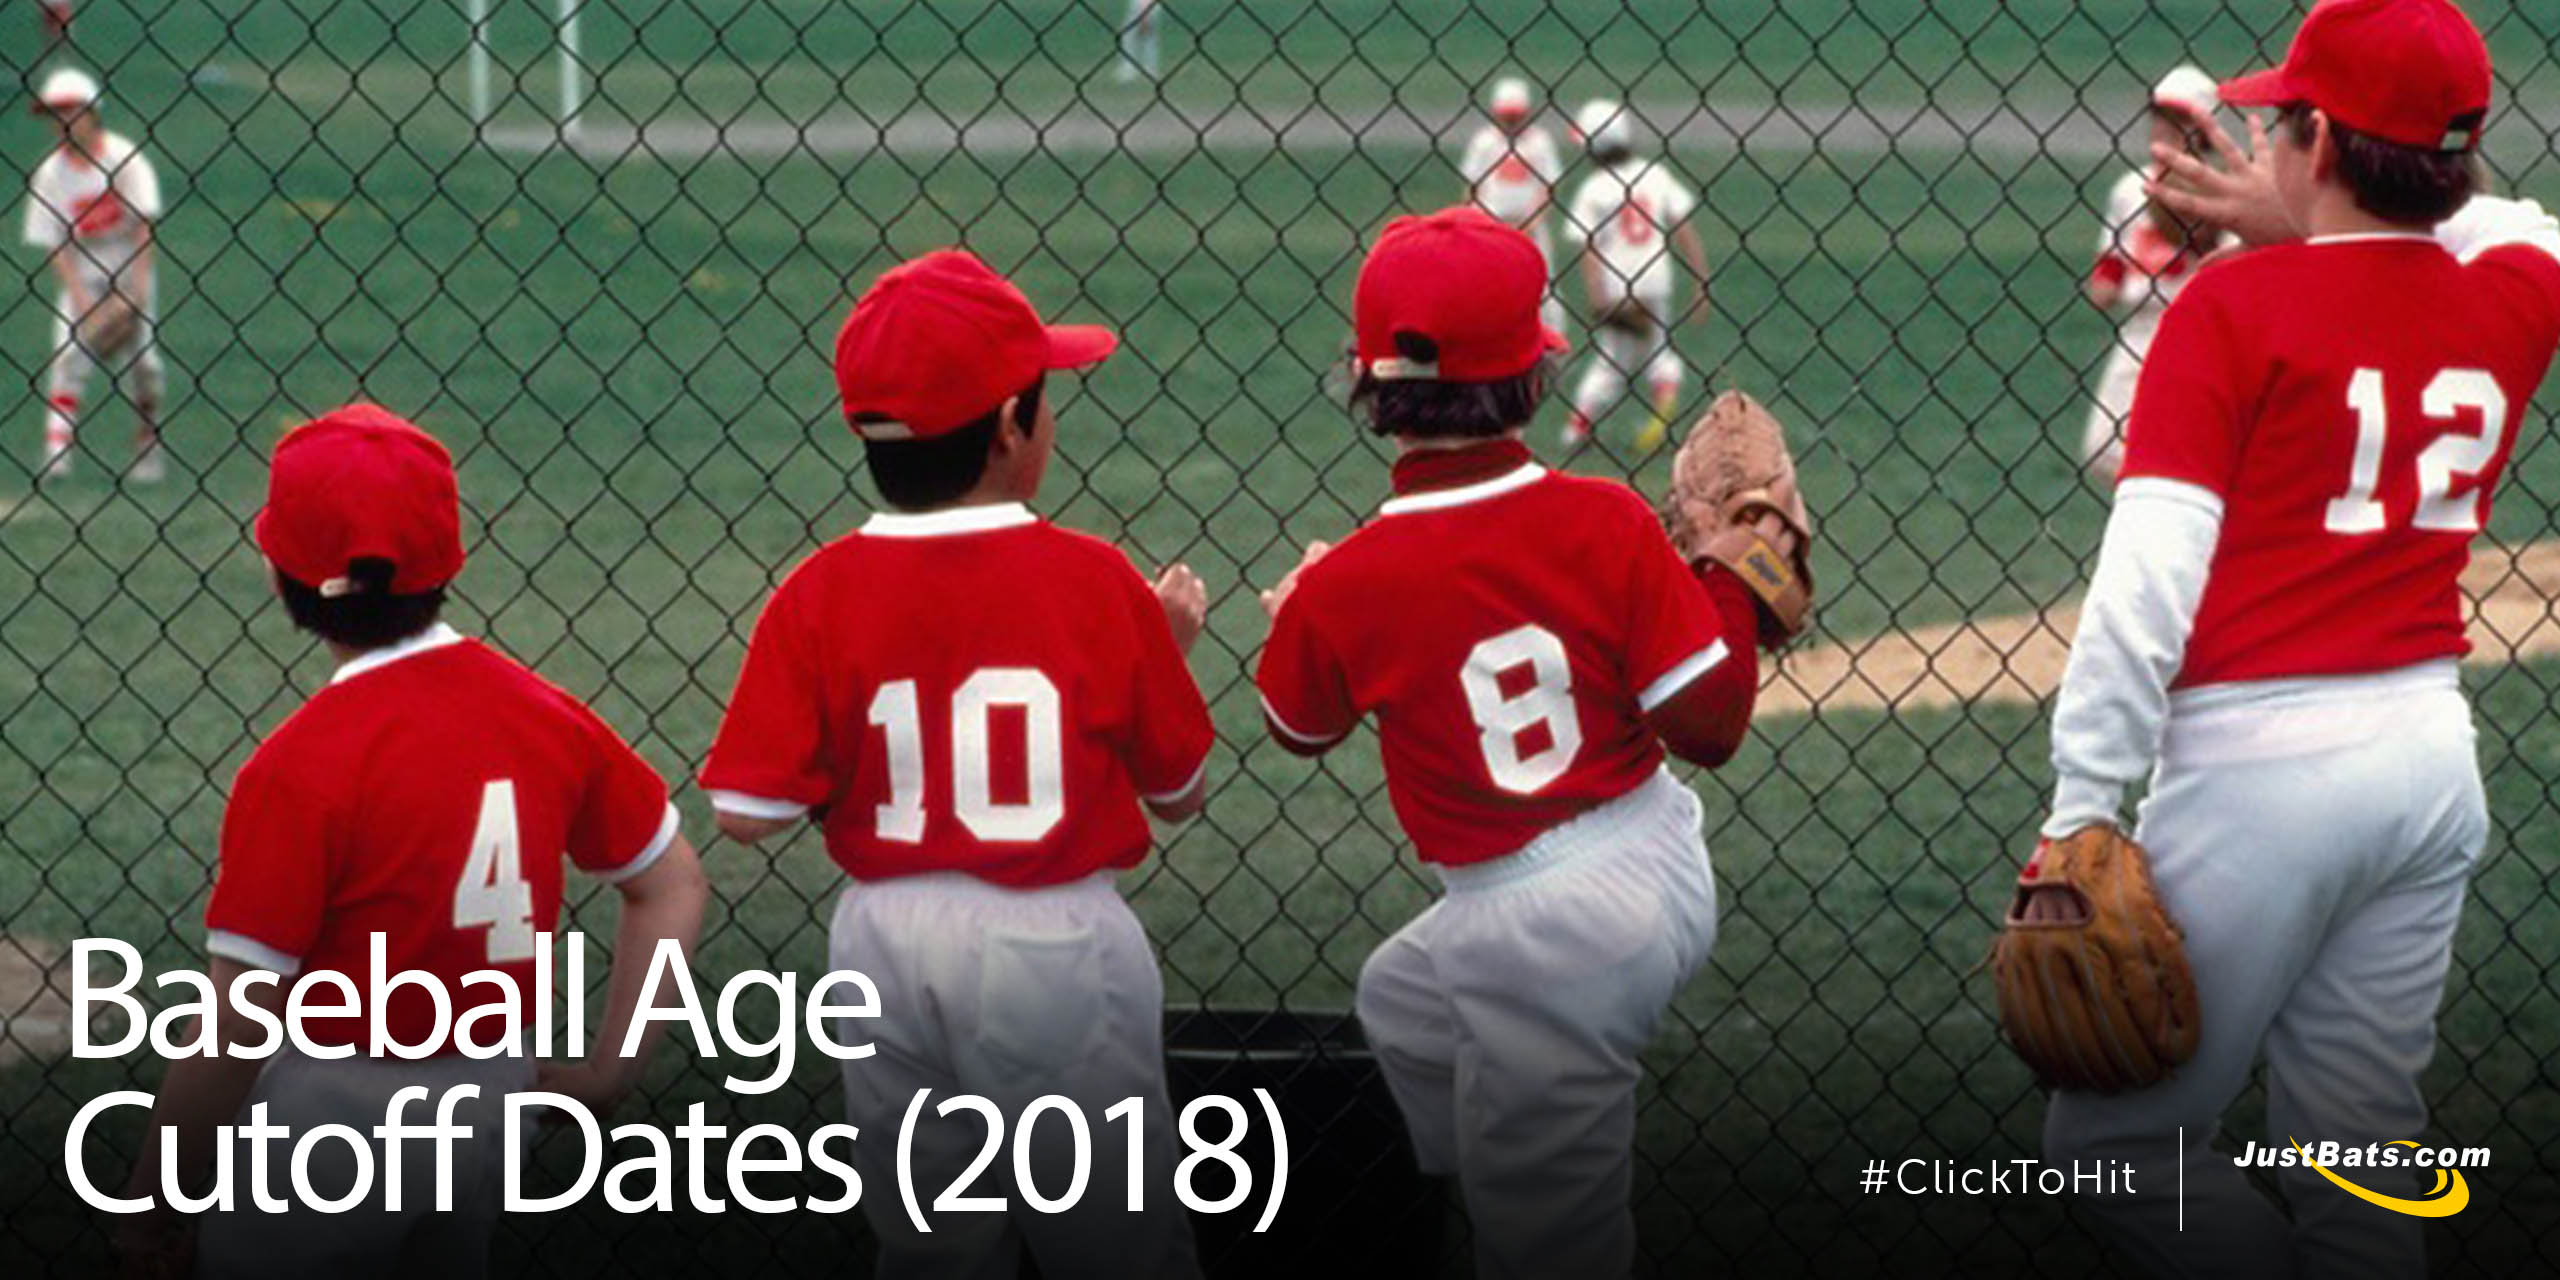 Baseball Age Cutoff Dates (2018)